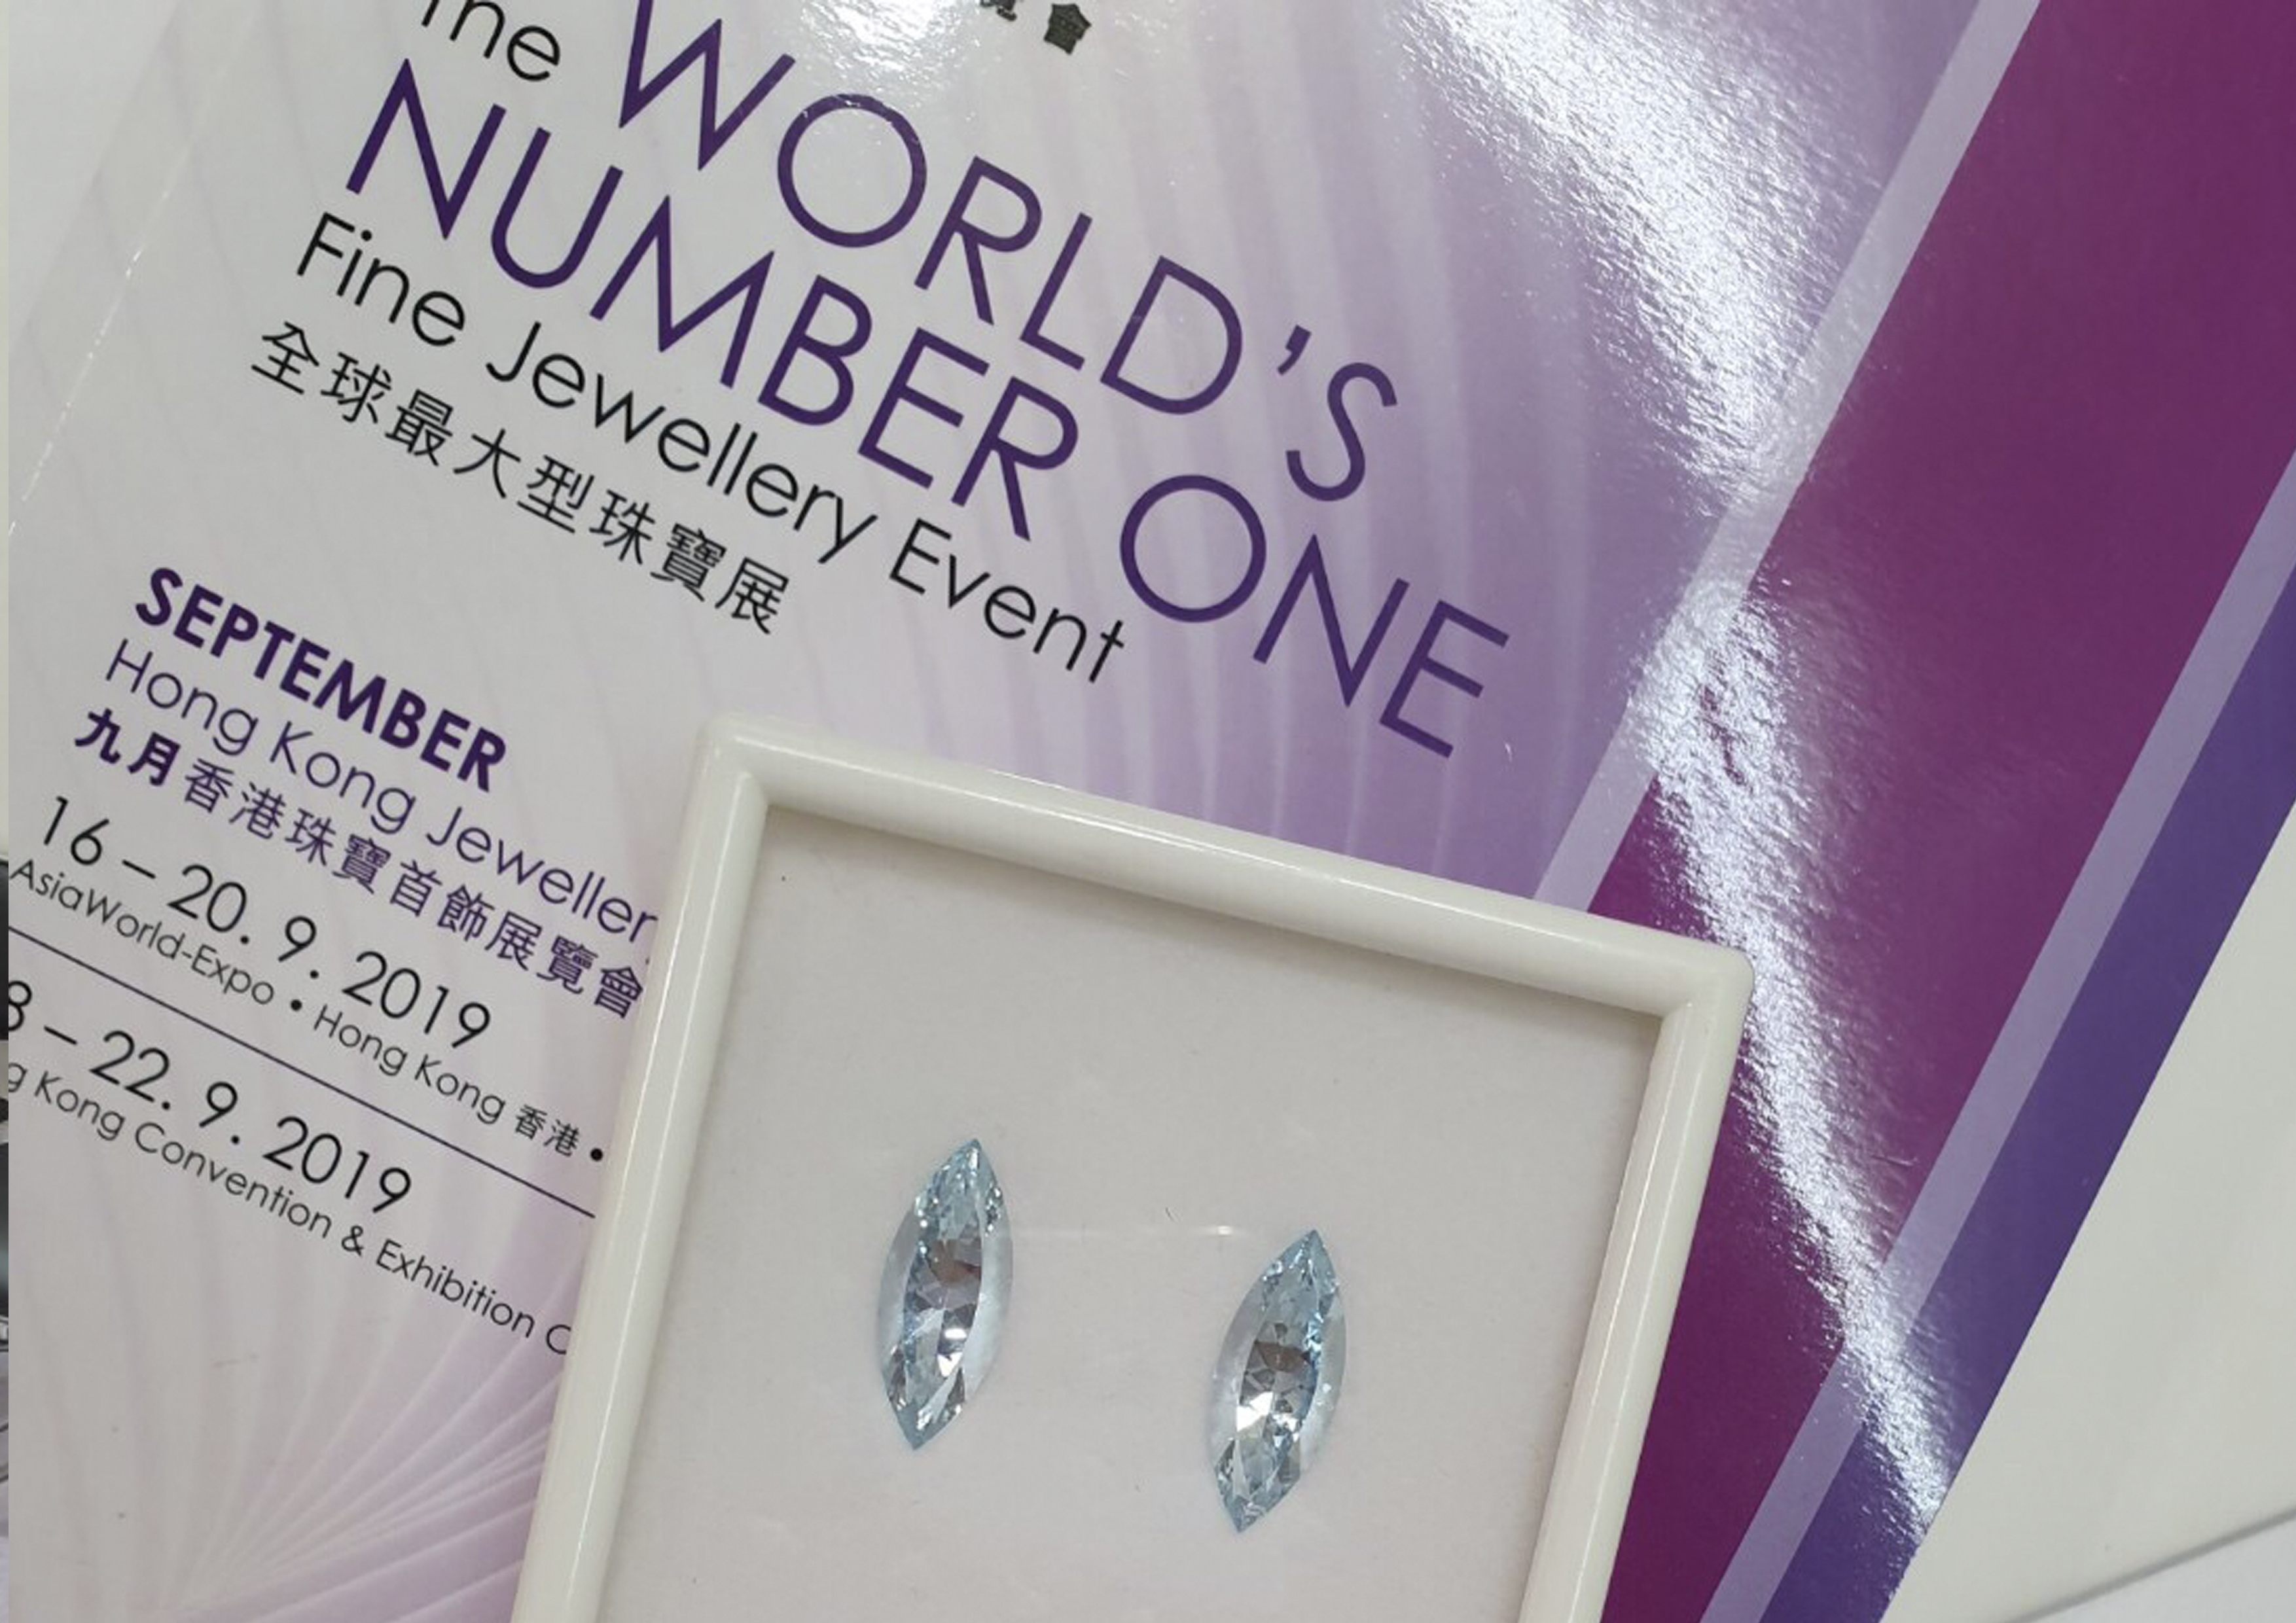 There are some results of the participation in the Hong Kong Jewellery & Gem Fair exhibition